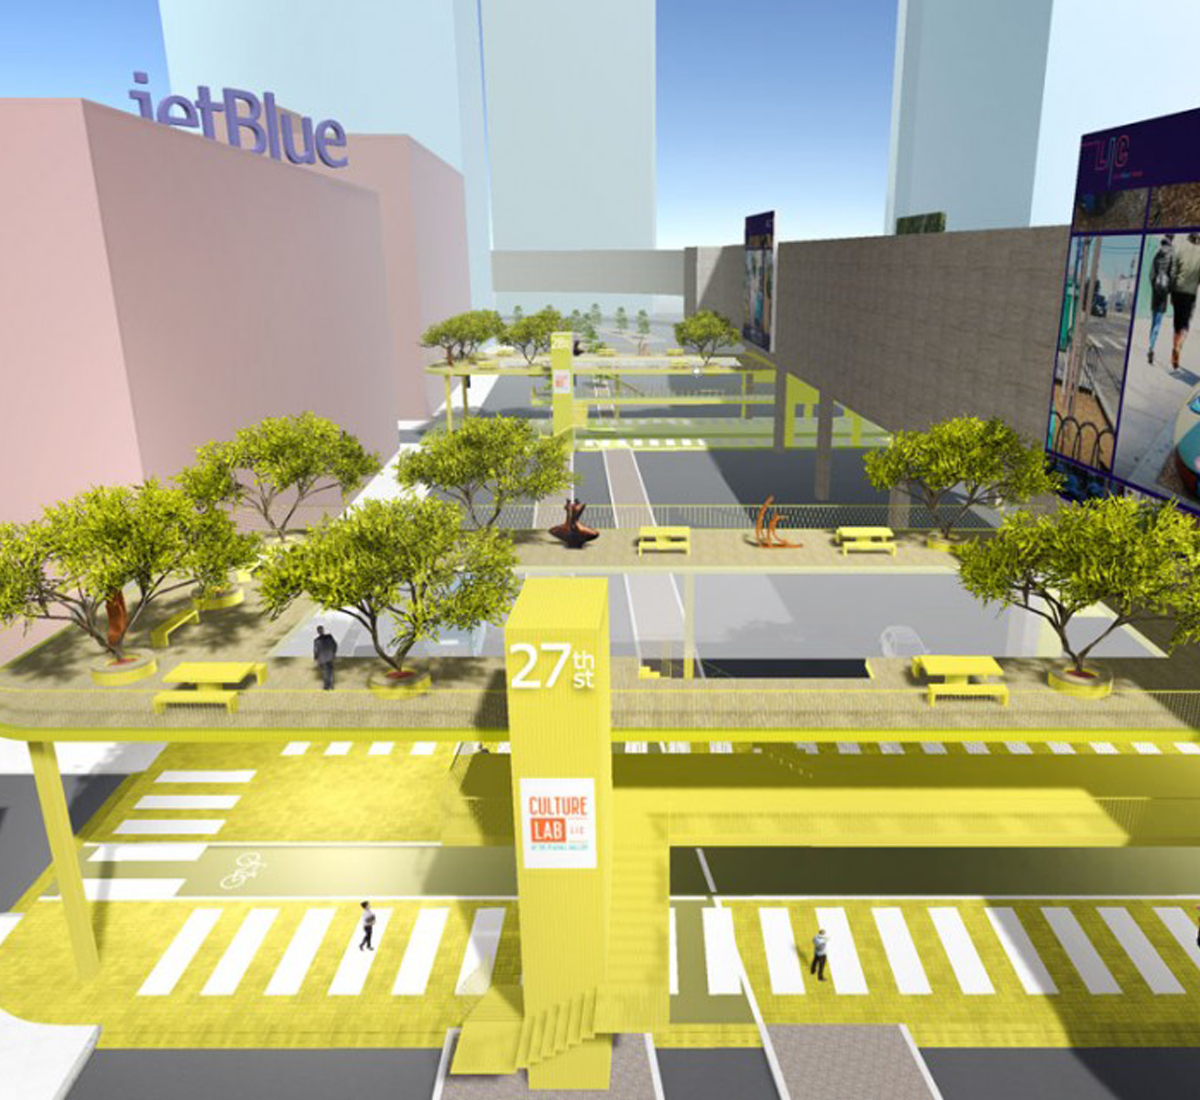 A a large yellow walkway structure with pedestrians and traffic.